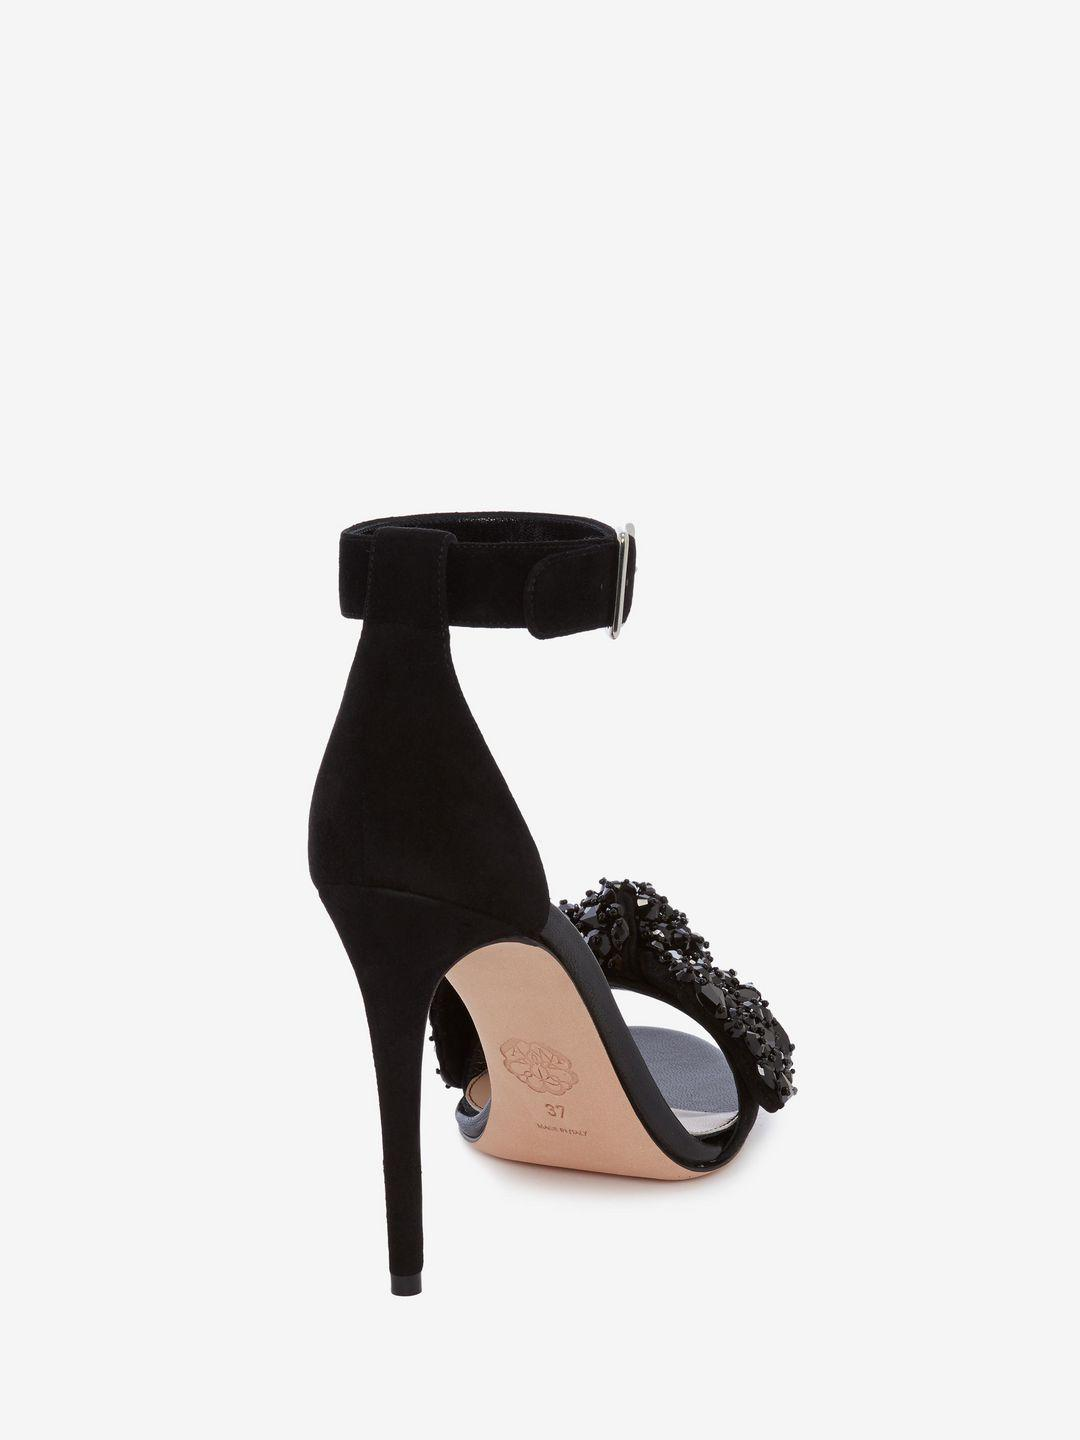 e85d10339a69 Alexander McQueen Bow Embroidered Sandal in Black - Lyst